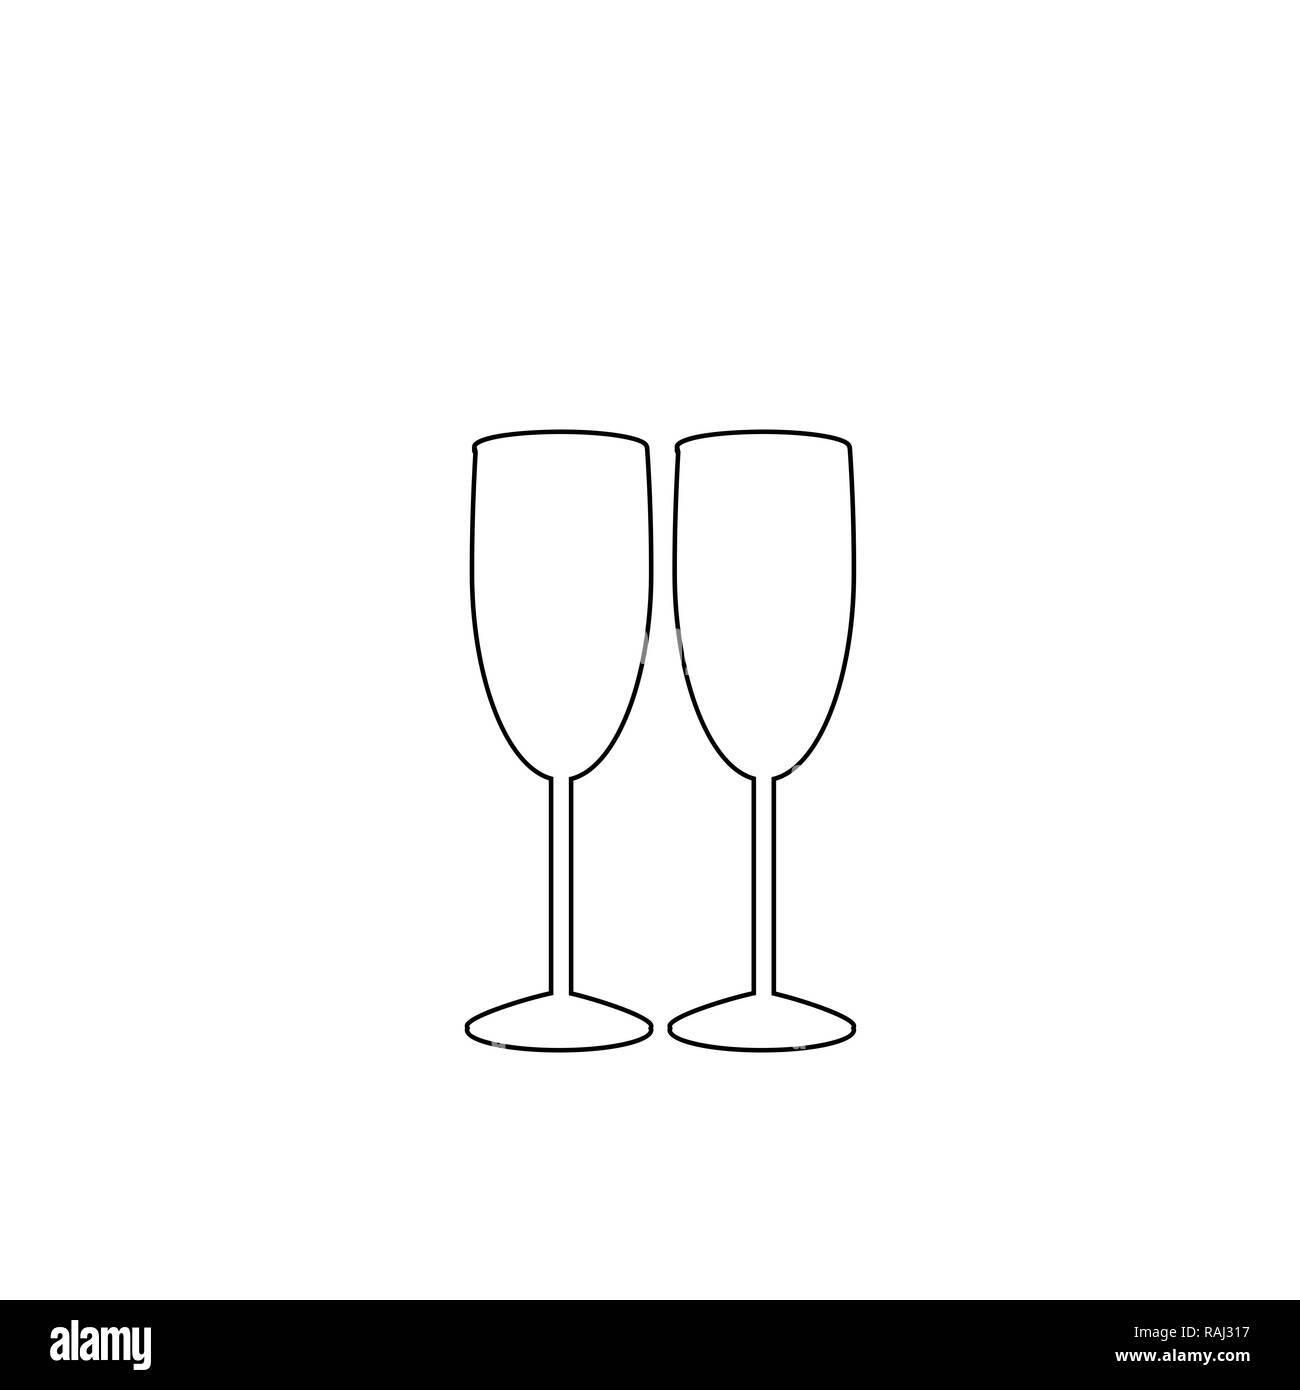 42122123316 Black outline silhouette of couple champagne or wine glasses on white  background. Cheers icon. Fragile or packaging glass symbol, sign, clipart.  Monoc